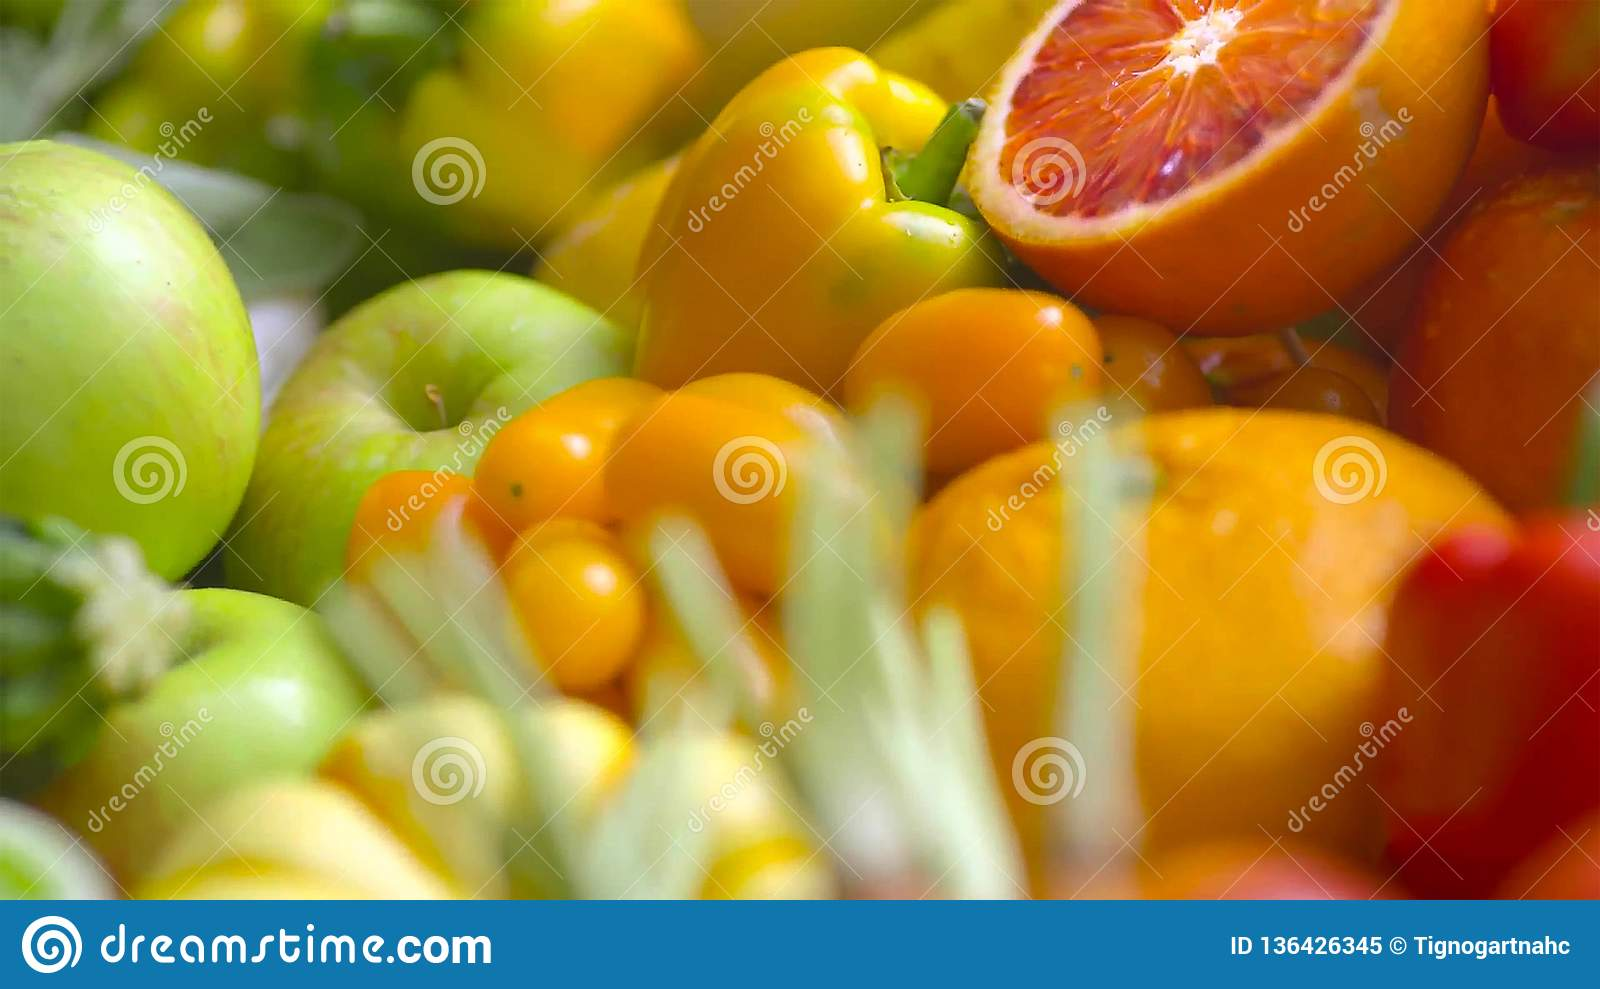 Assorted fresh ripe fruits and vegetables. Food concept background